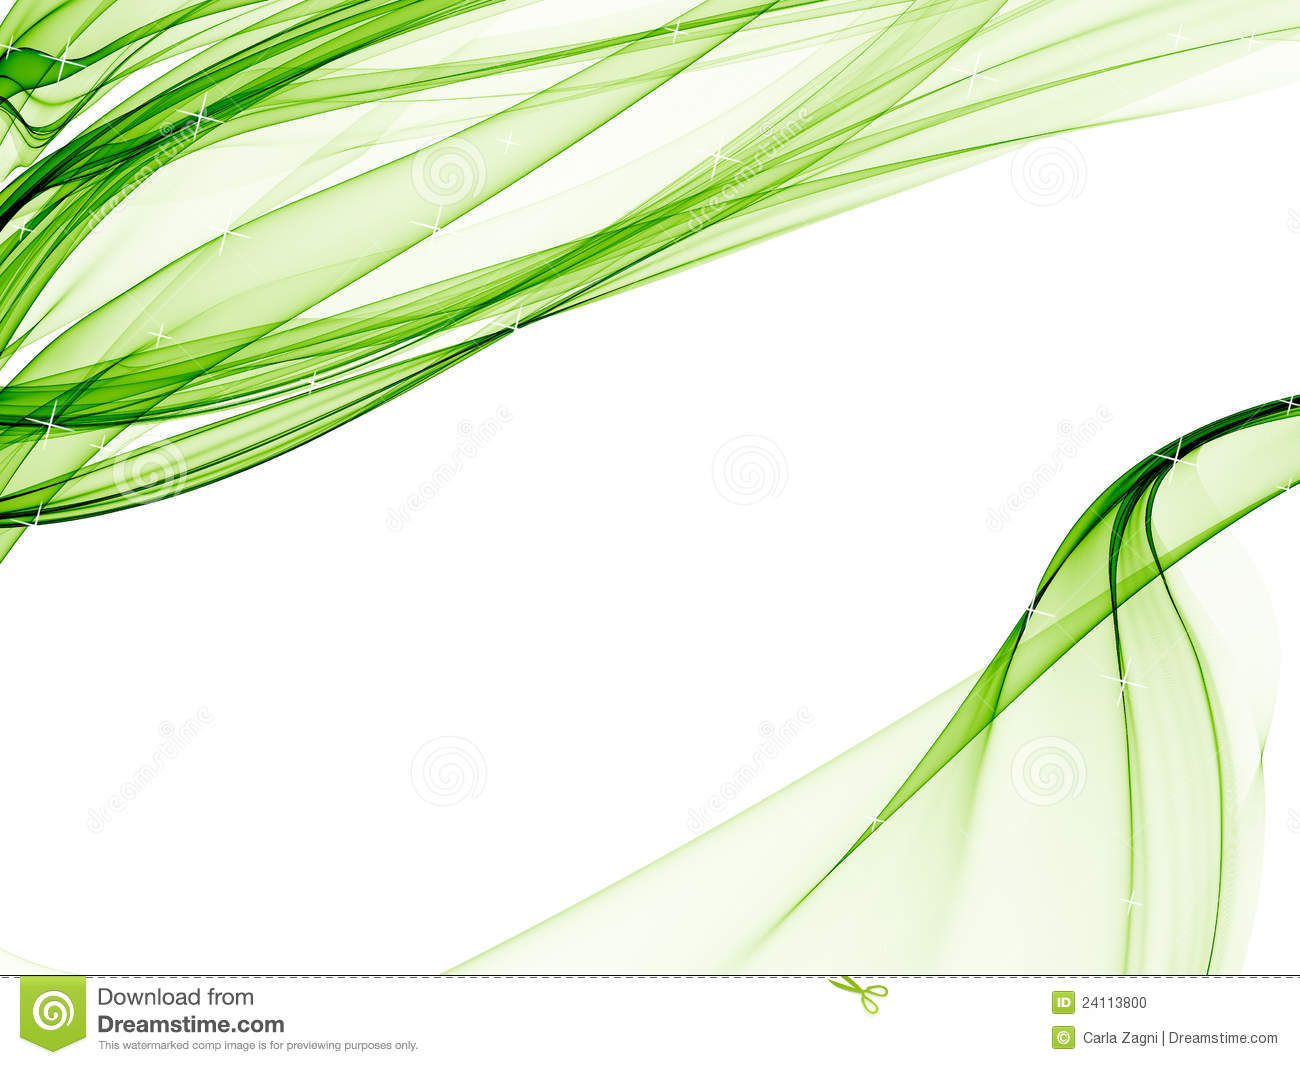 Elegant background with soft green designs stock photo Green plans